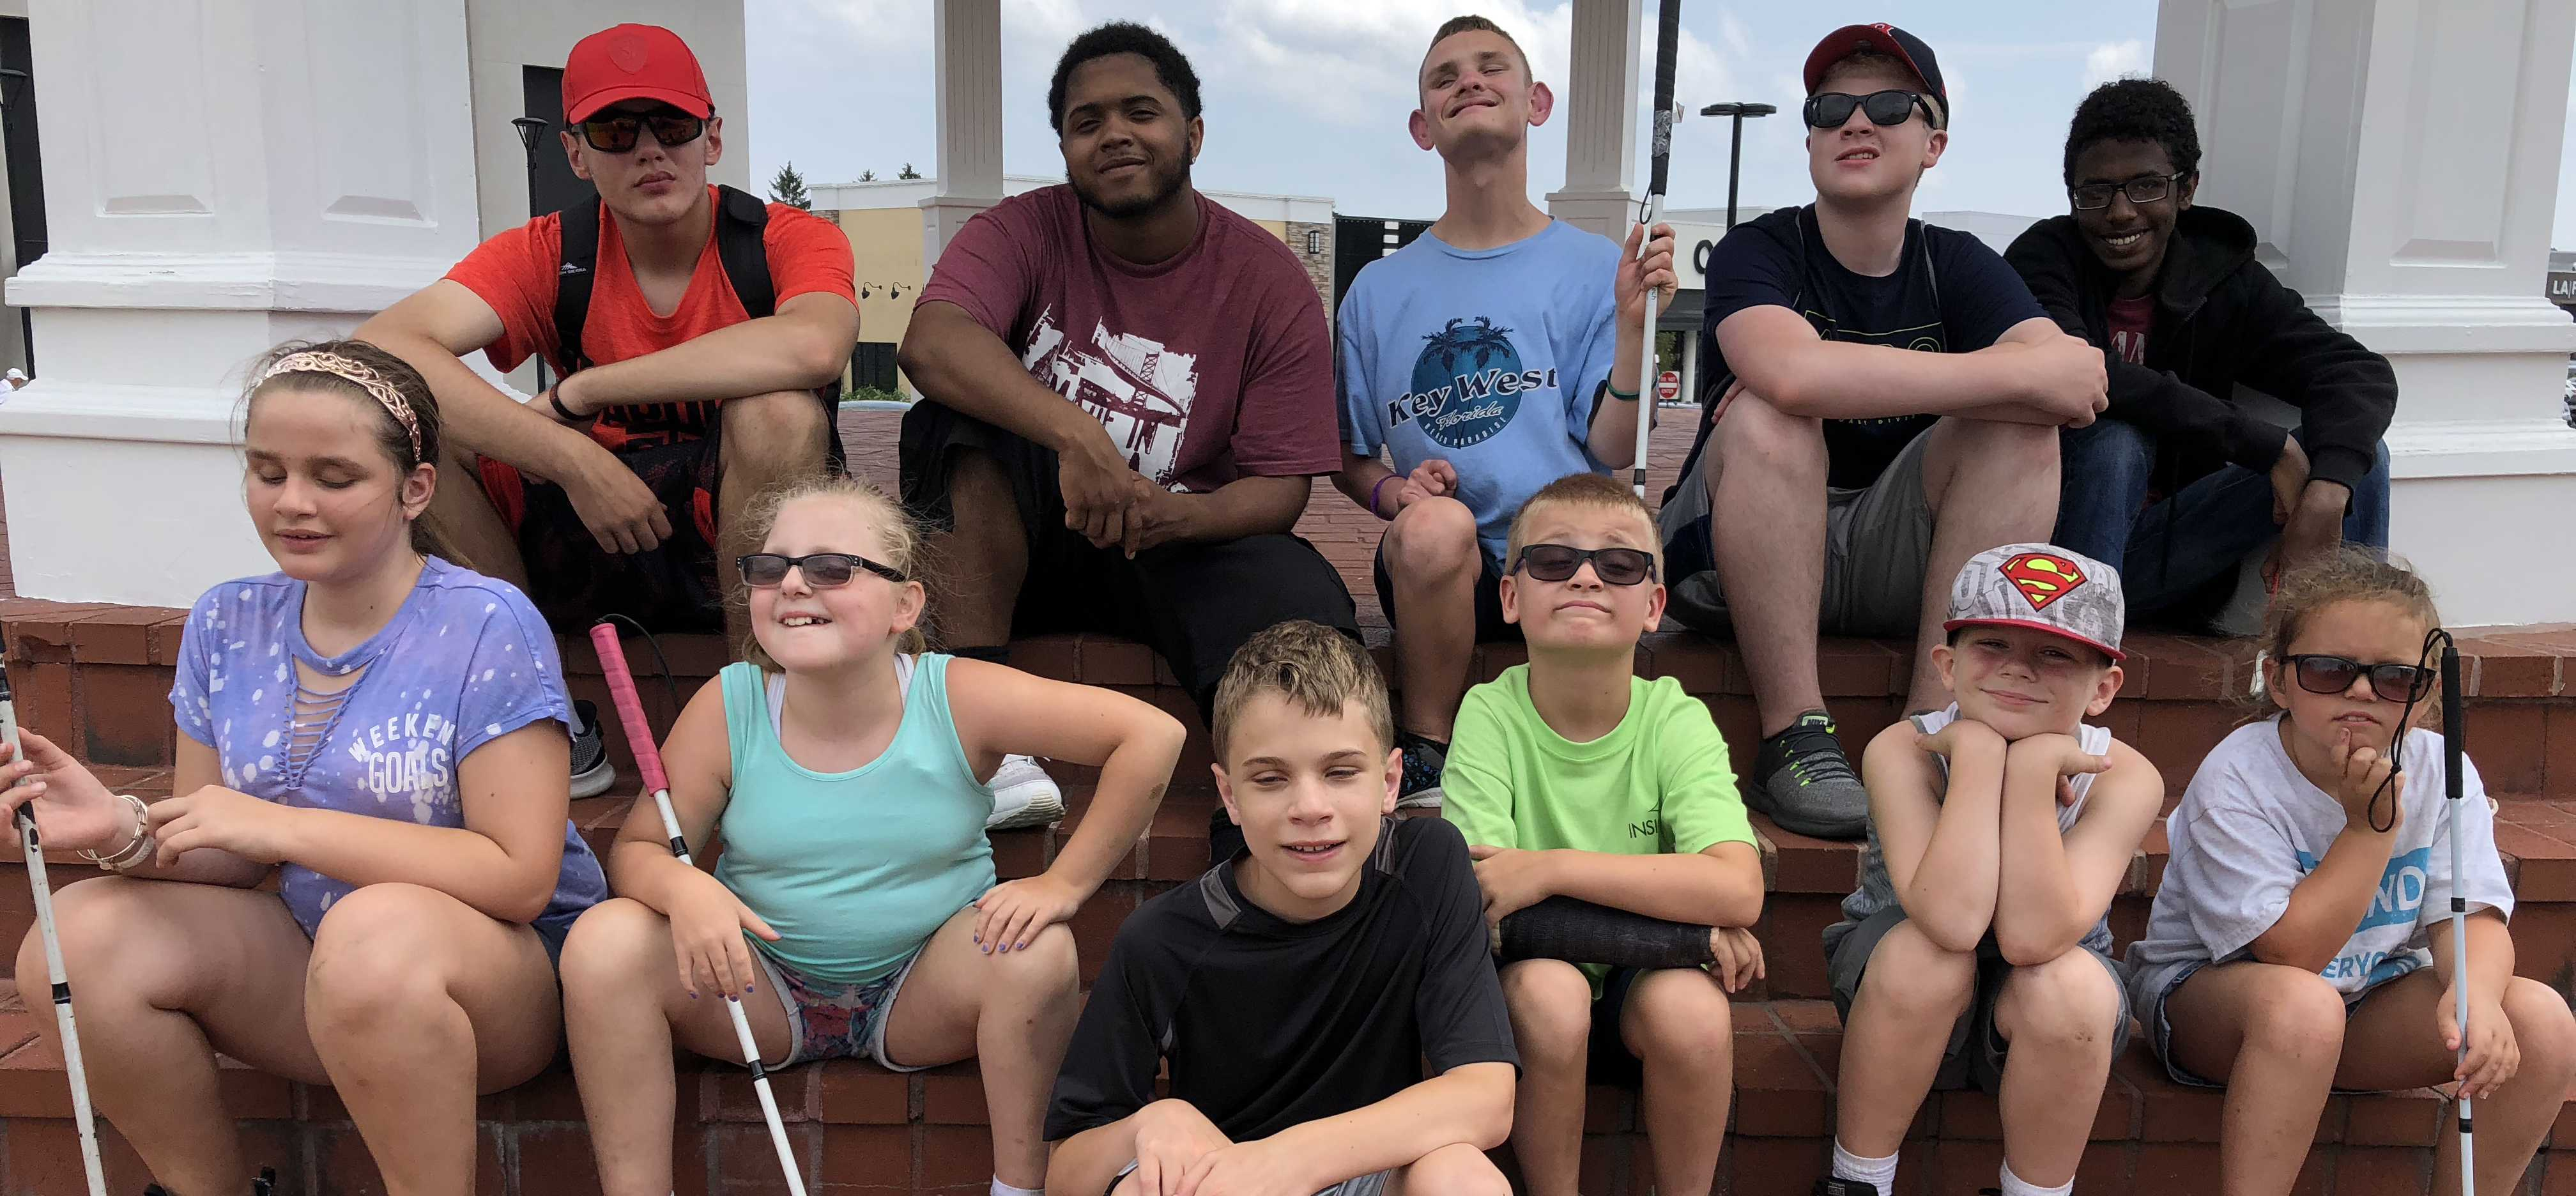 This Years Youth Summer Camp Helped Take The Participants Far Outside Their Comfort Zones With A Wide Range Of Experiences Designed To Help Build